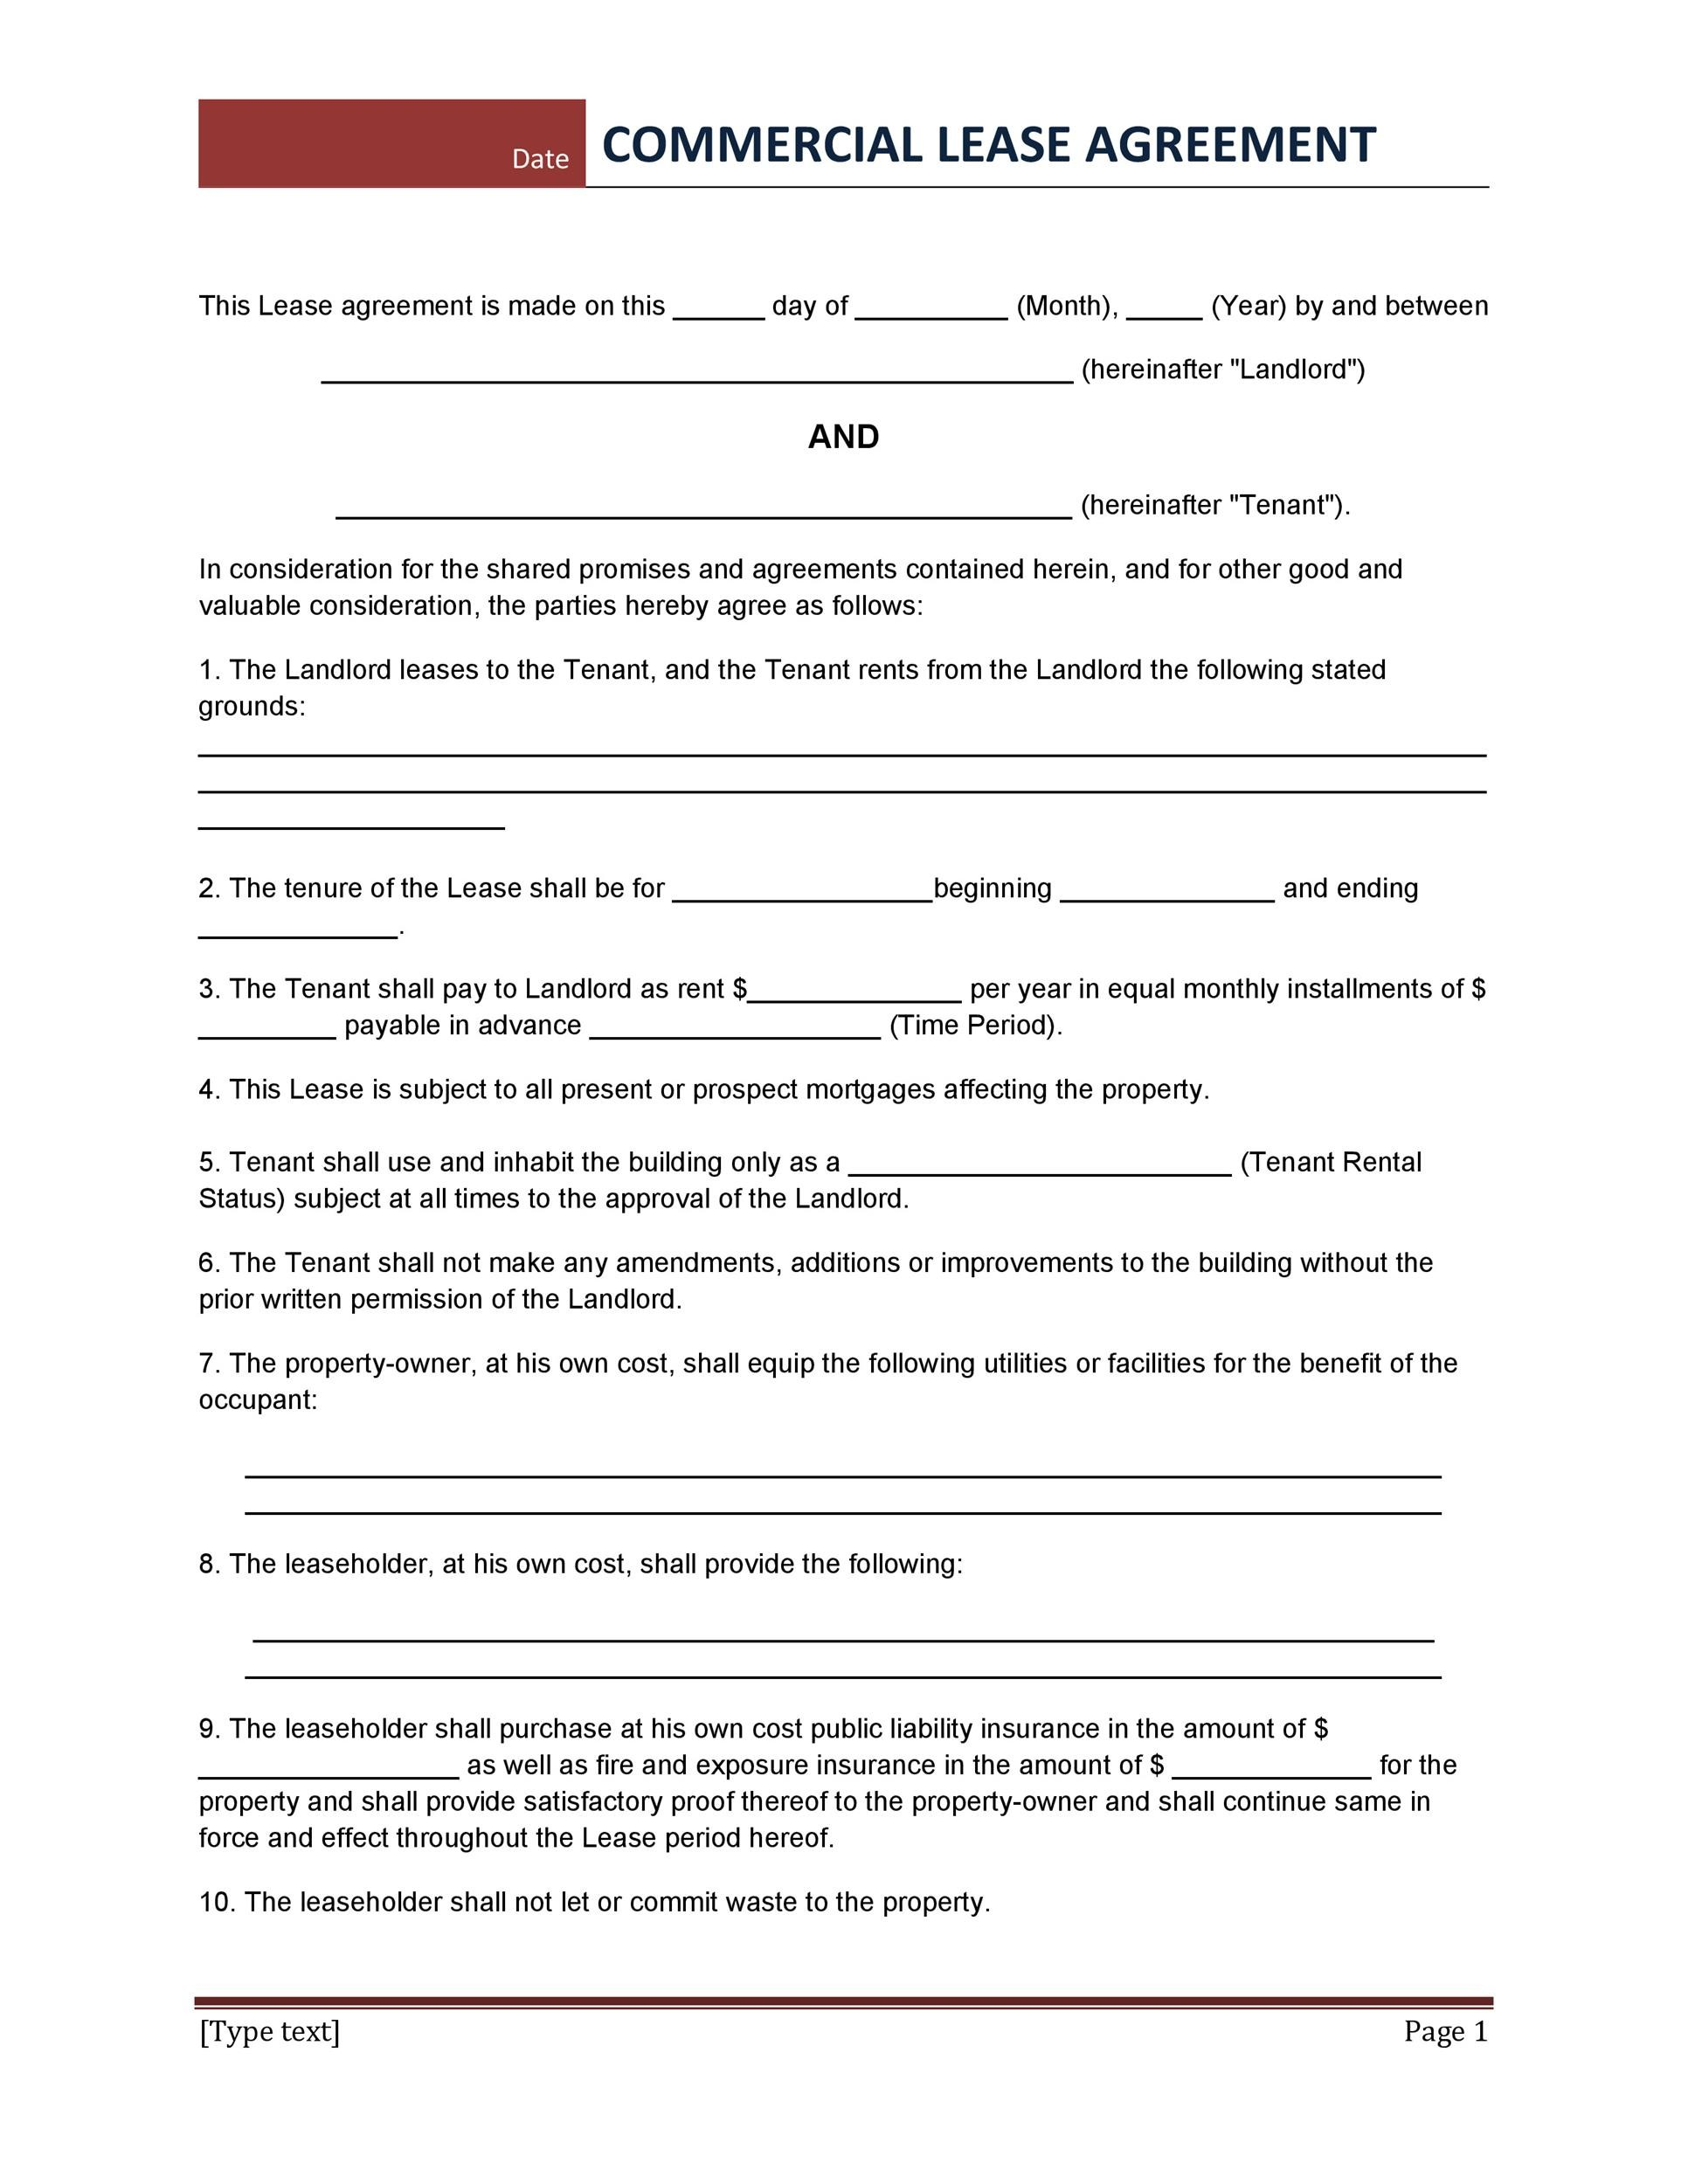 Free Commercial Lease Agreement Template 05